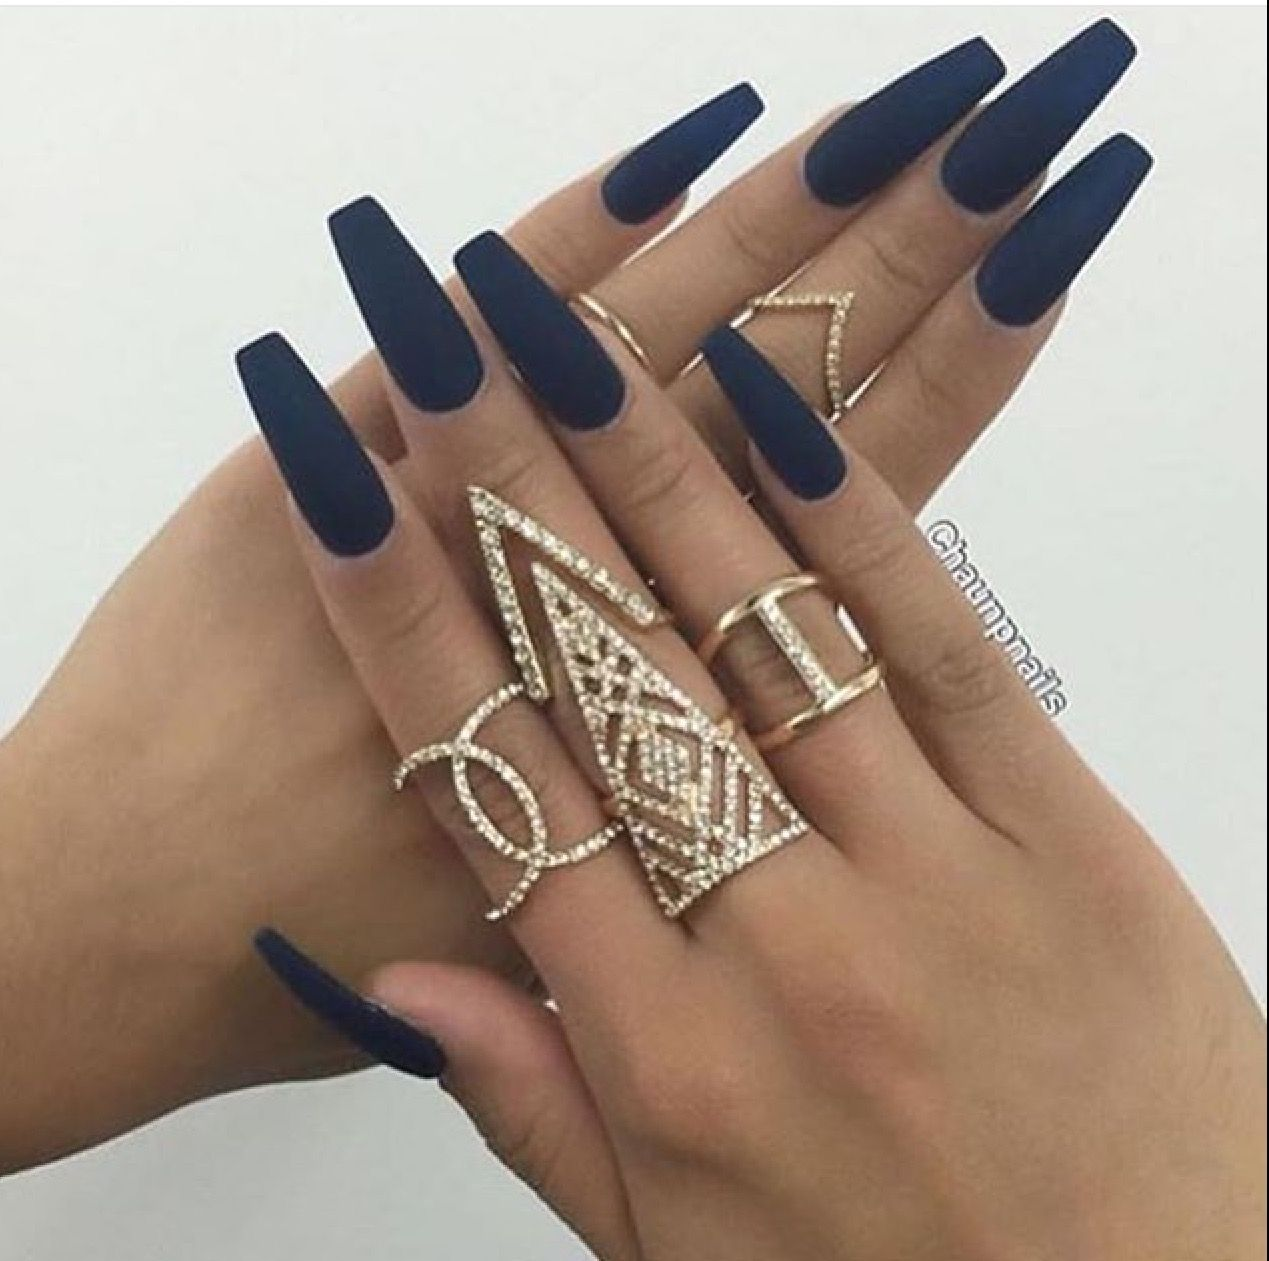 Pin by Elizabeth🍍 on Nails | Pinterest